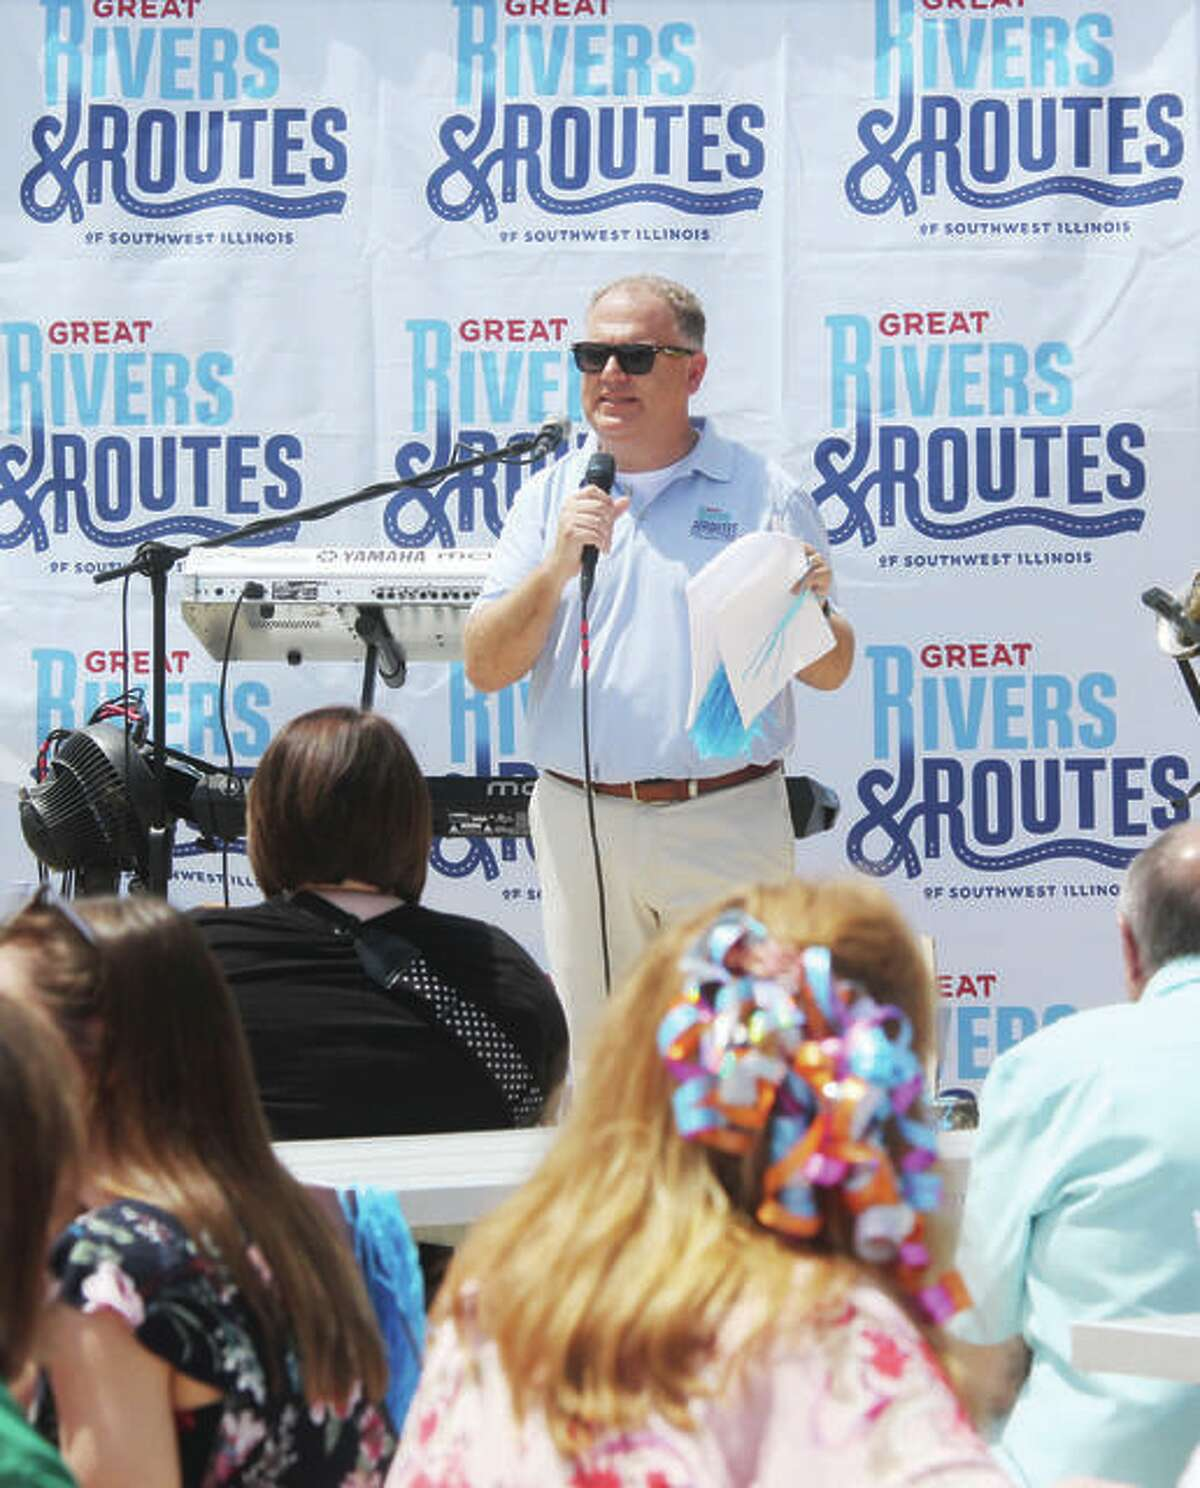 Brett Stawar, president and CEO The Great Rivers and Routes Tourism Bureau, speaks at a Rally for Tourism by The Great Rivers & Routes Tourism Bureau at Collinsville Aqua Park.